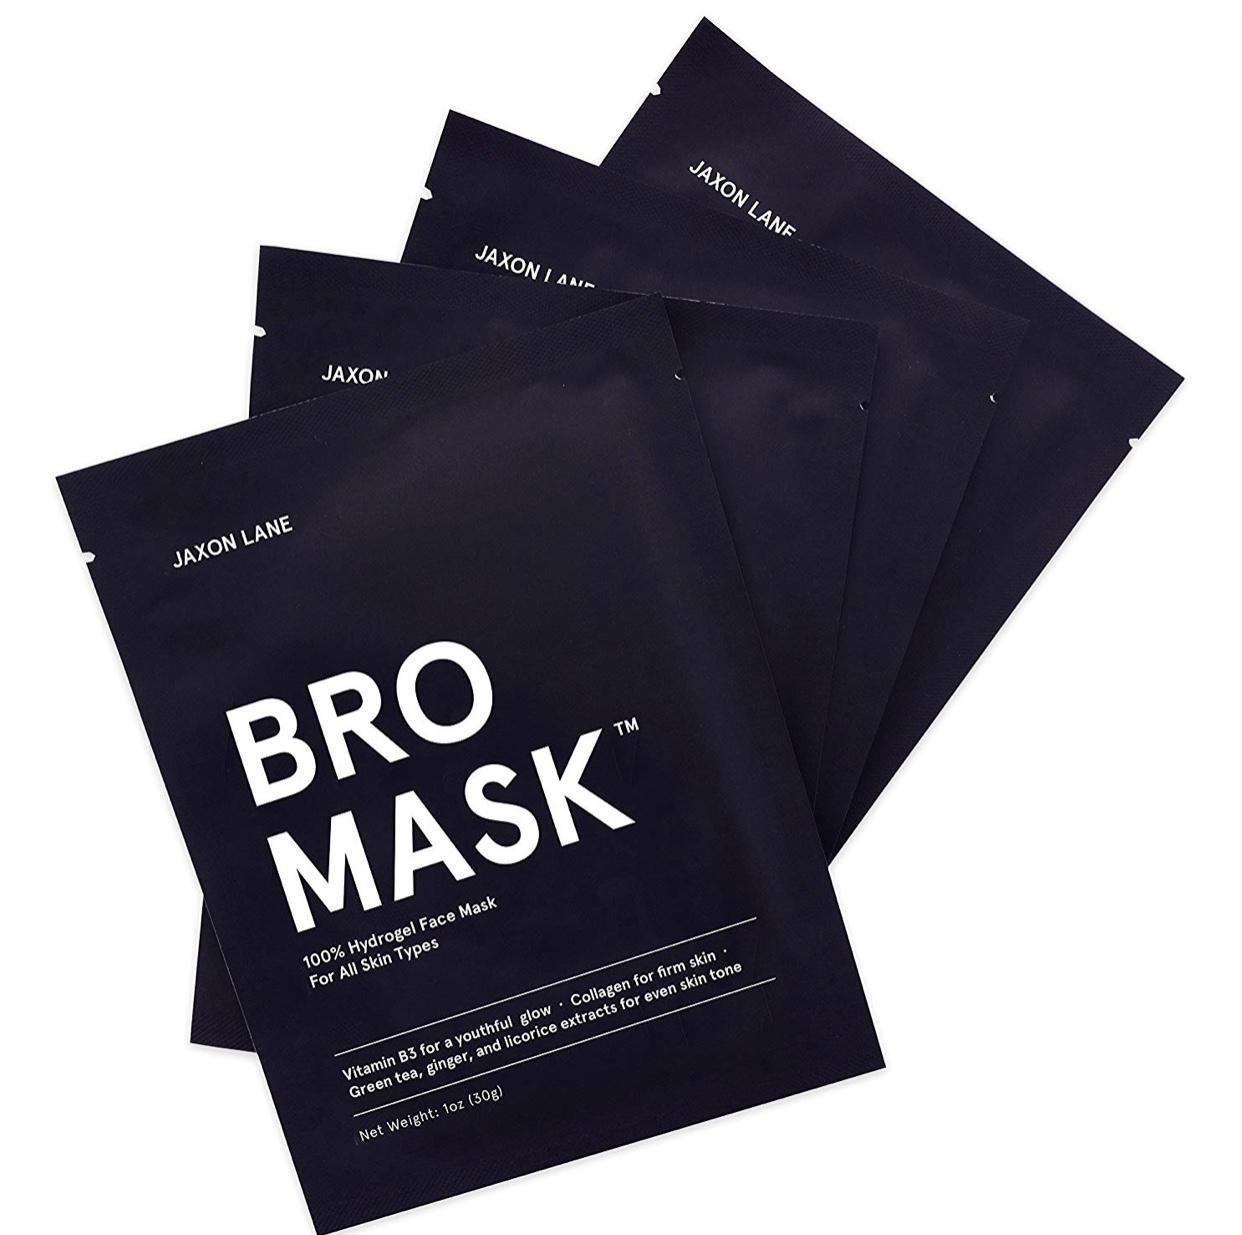 Jaxon Lane Bro Mask - a self-care gift for the holidays